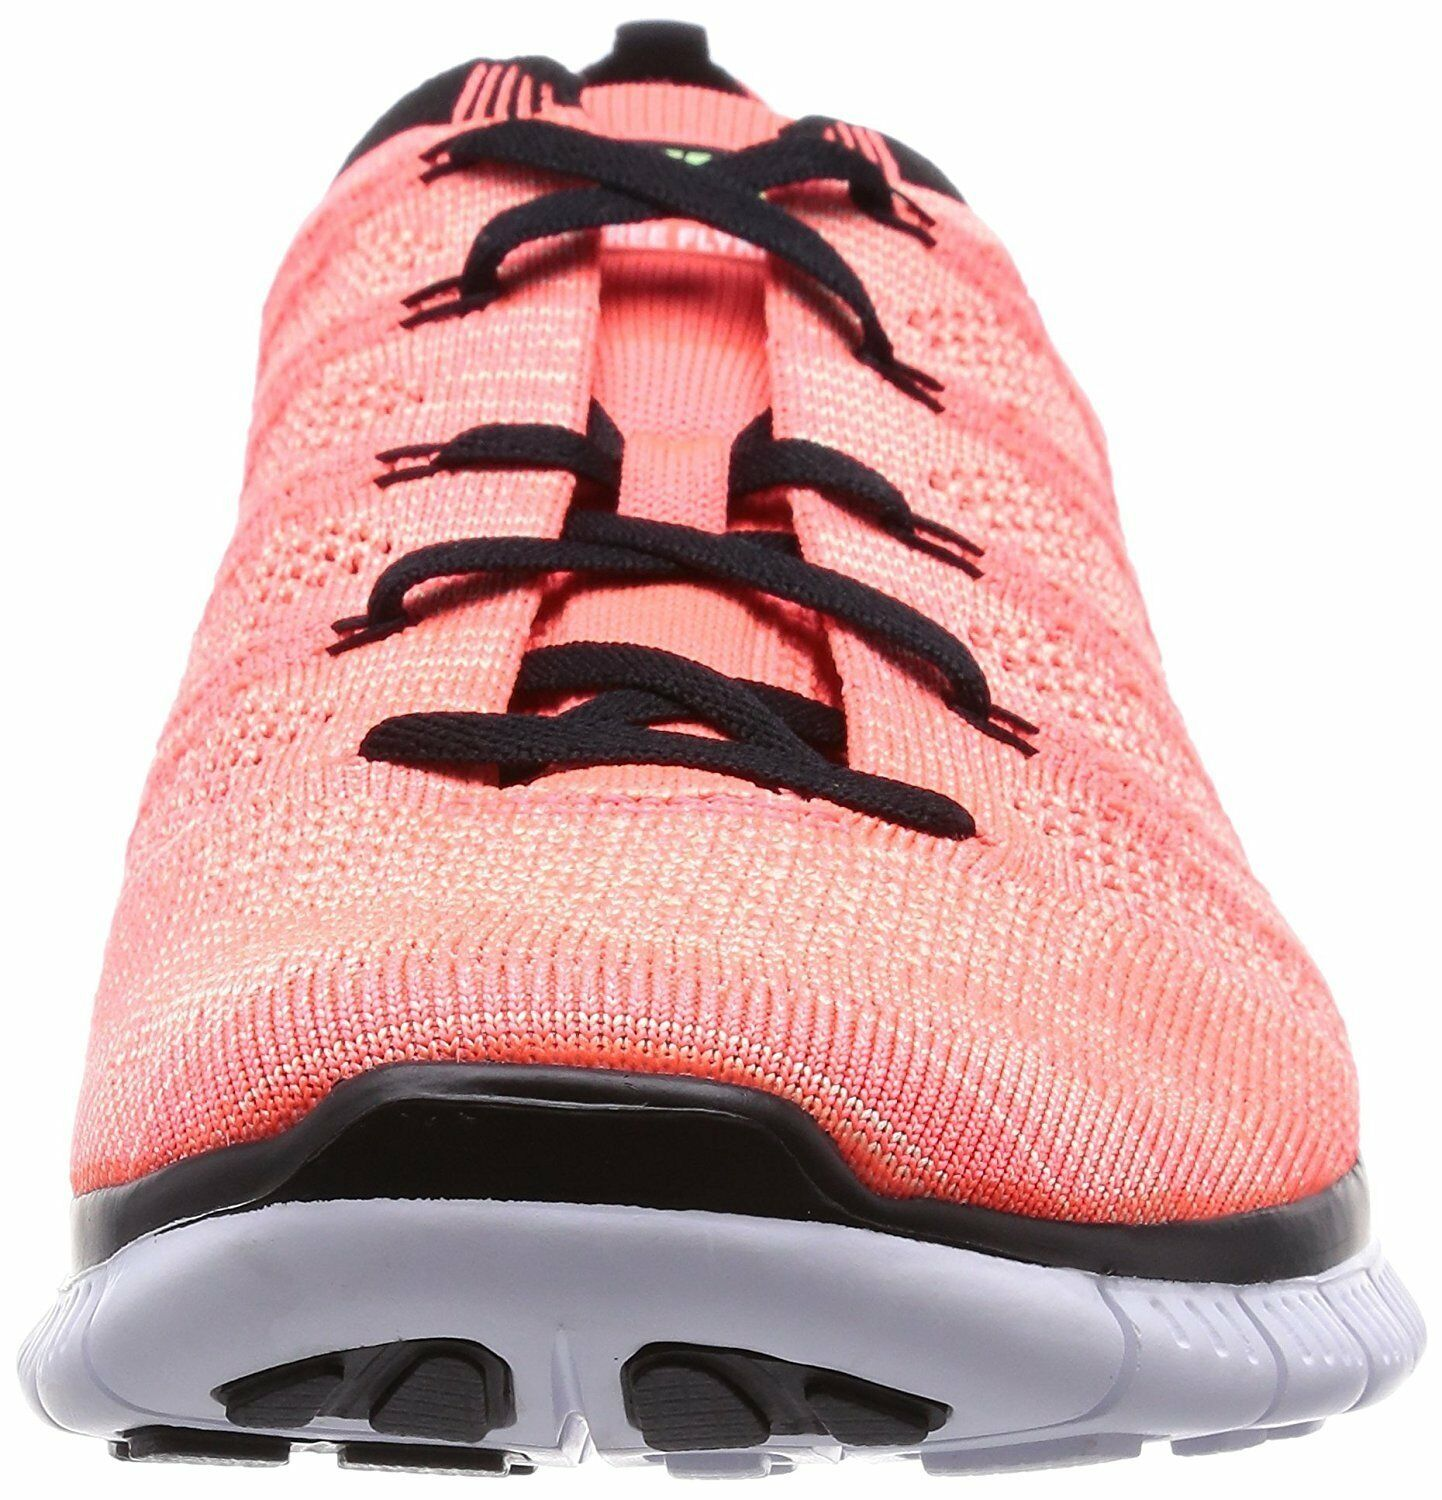 new styles de84f 2d5ab Nike Flyknit NSW Hot Lava Sz 9.5 100 Authentic Running 599459 800 for sale  online | eBay